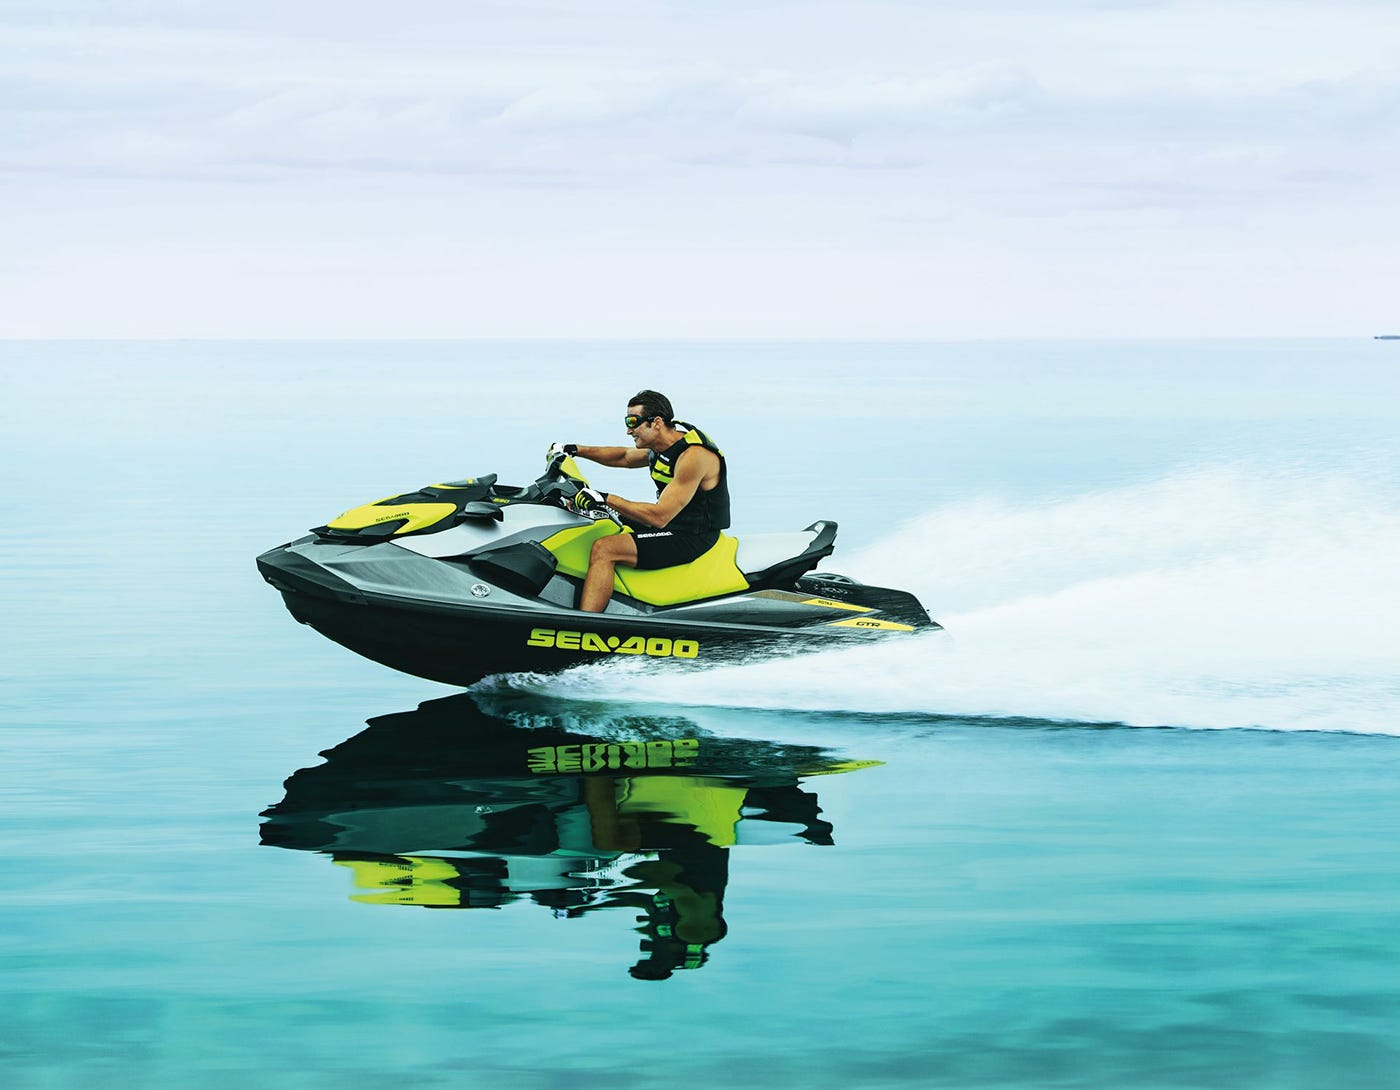 Personal watercraft in action